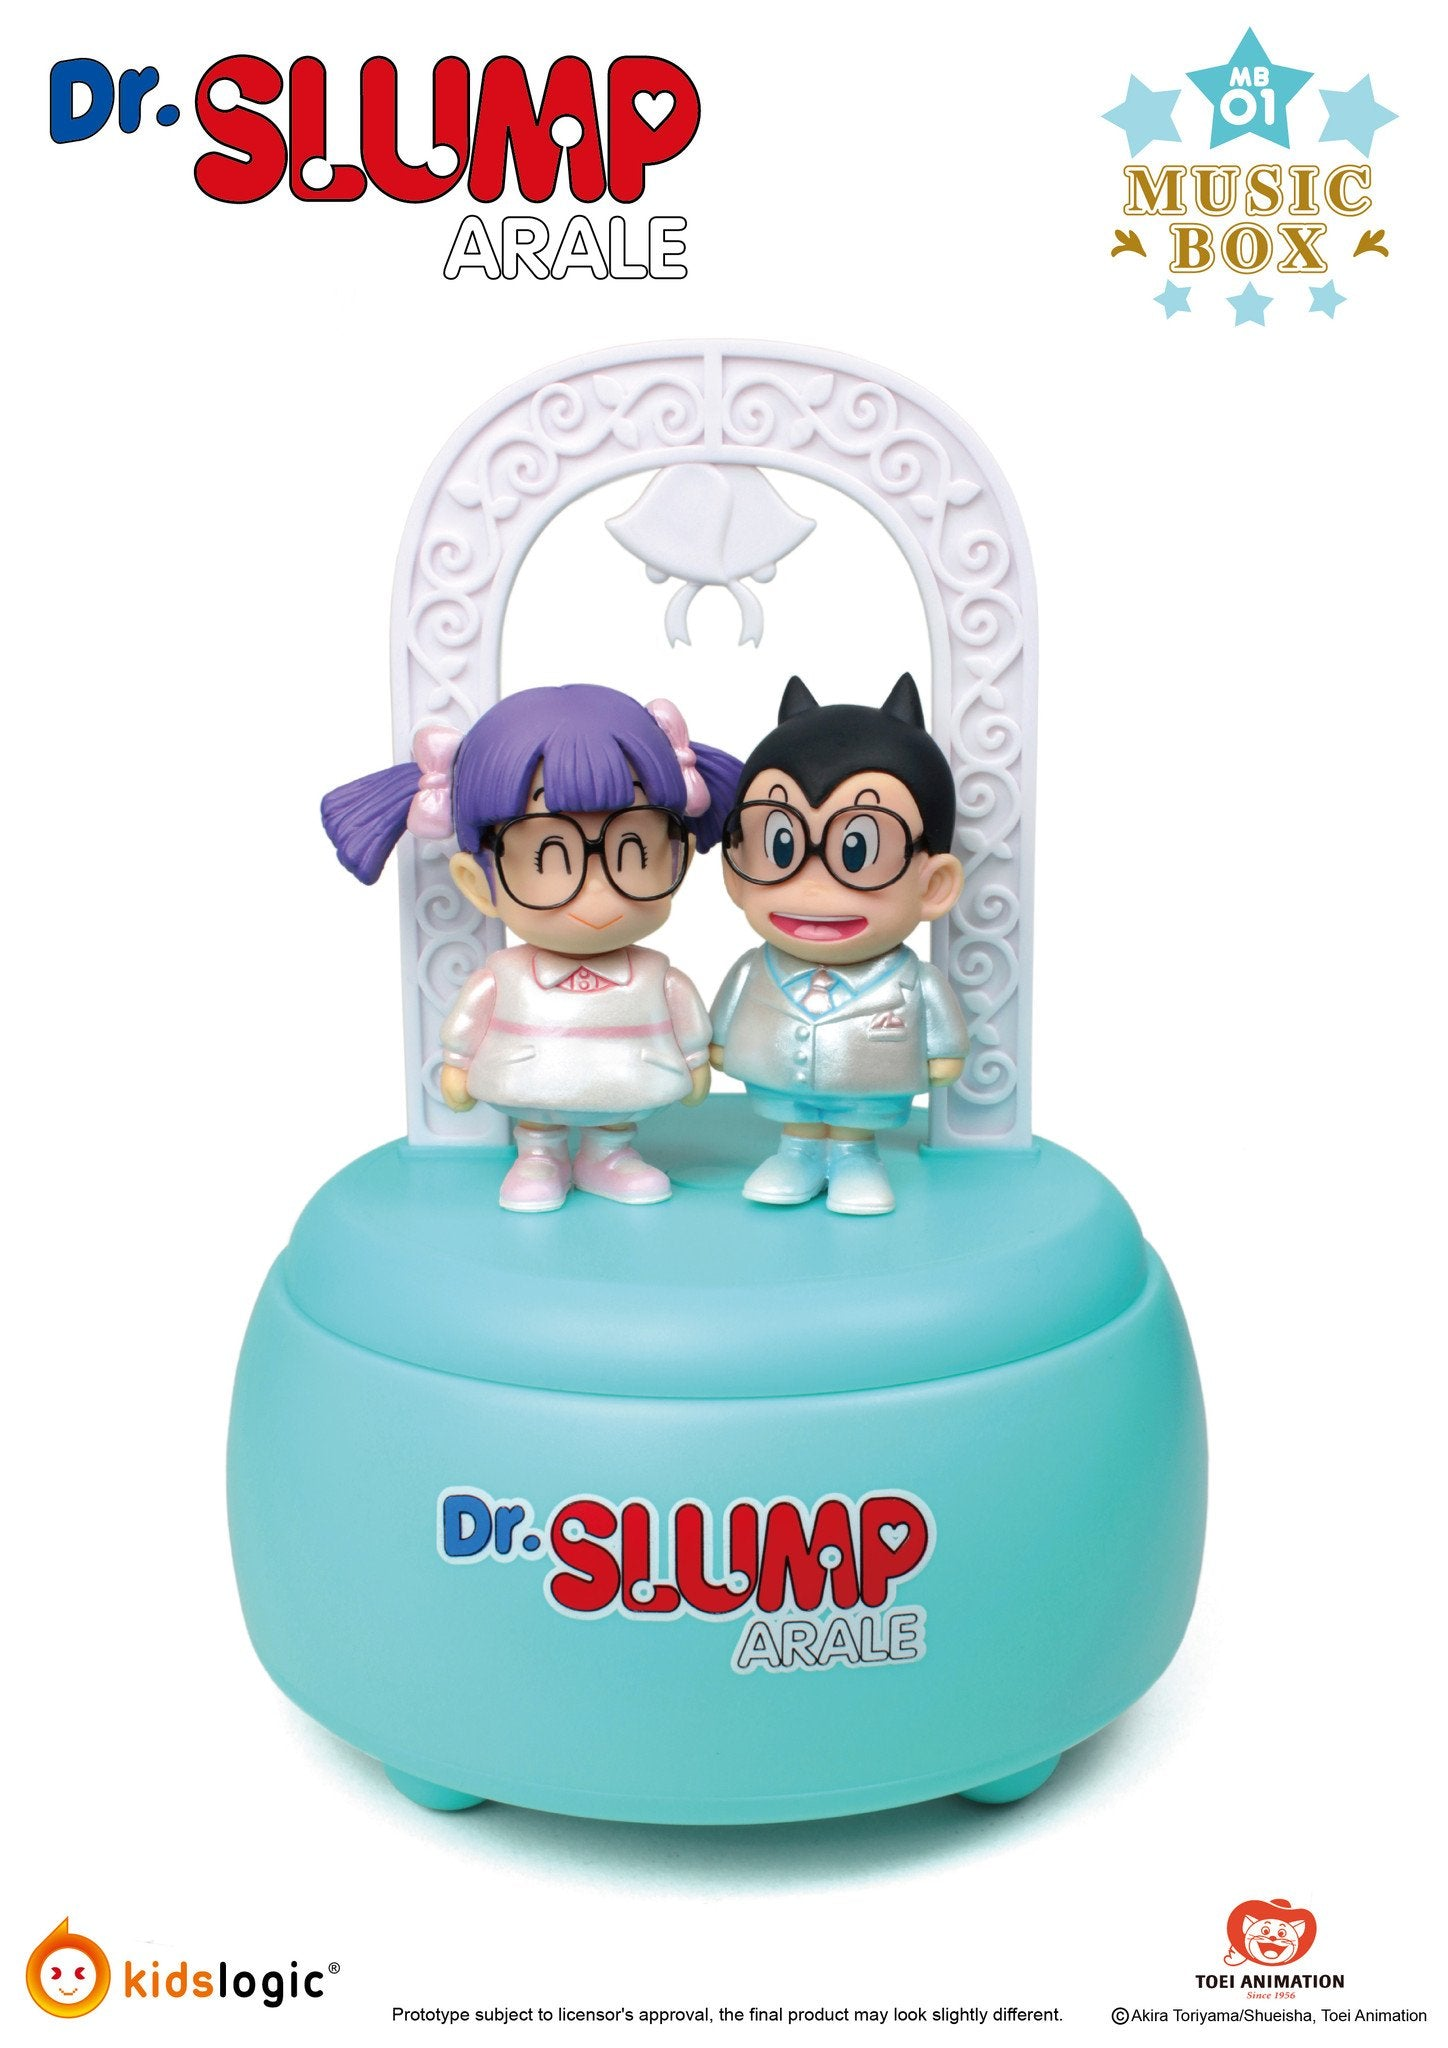 MB01, Arale Music Box Wedding Theme, Dr Slump Arale